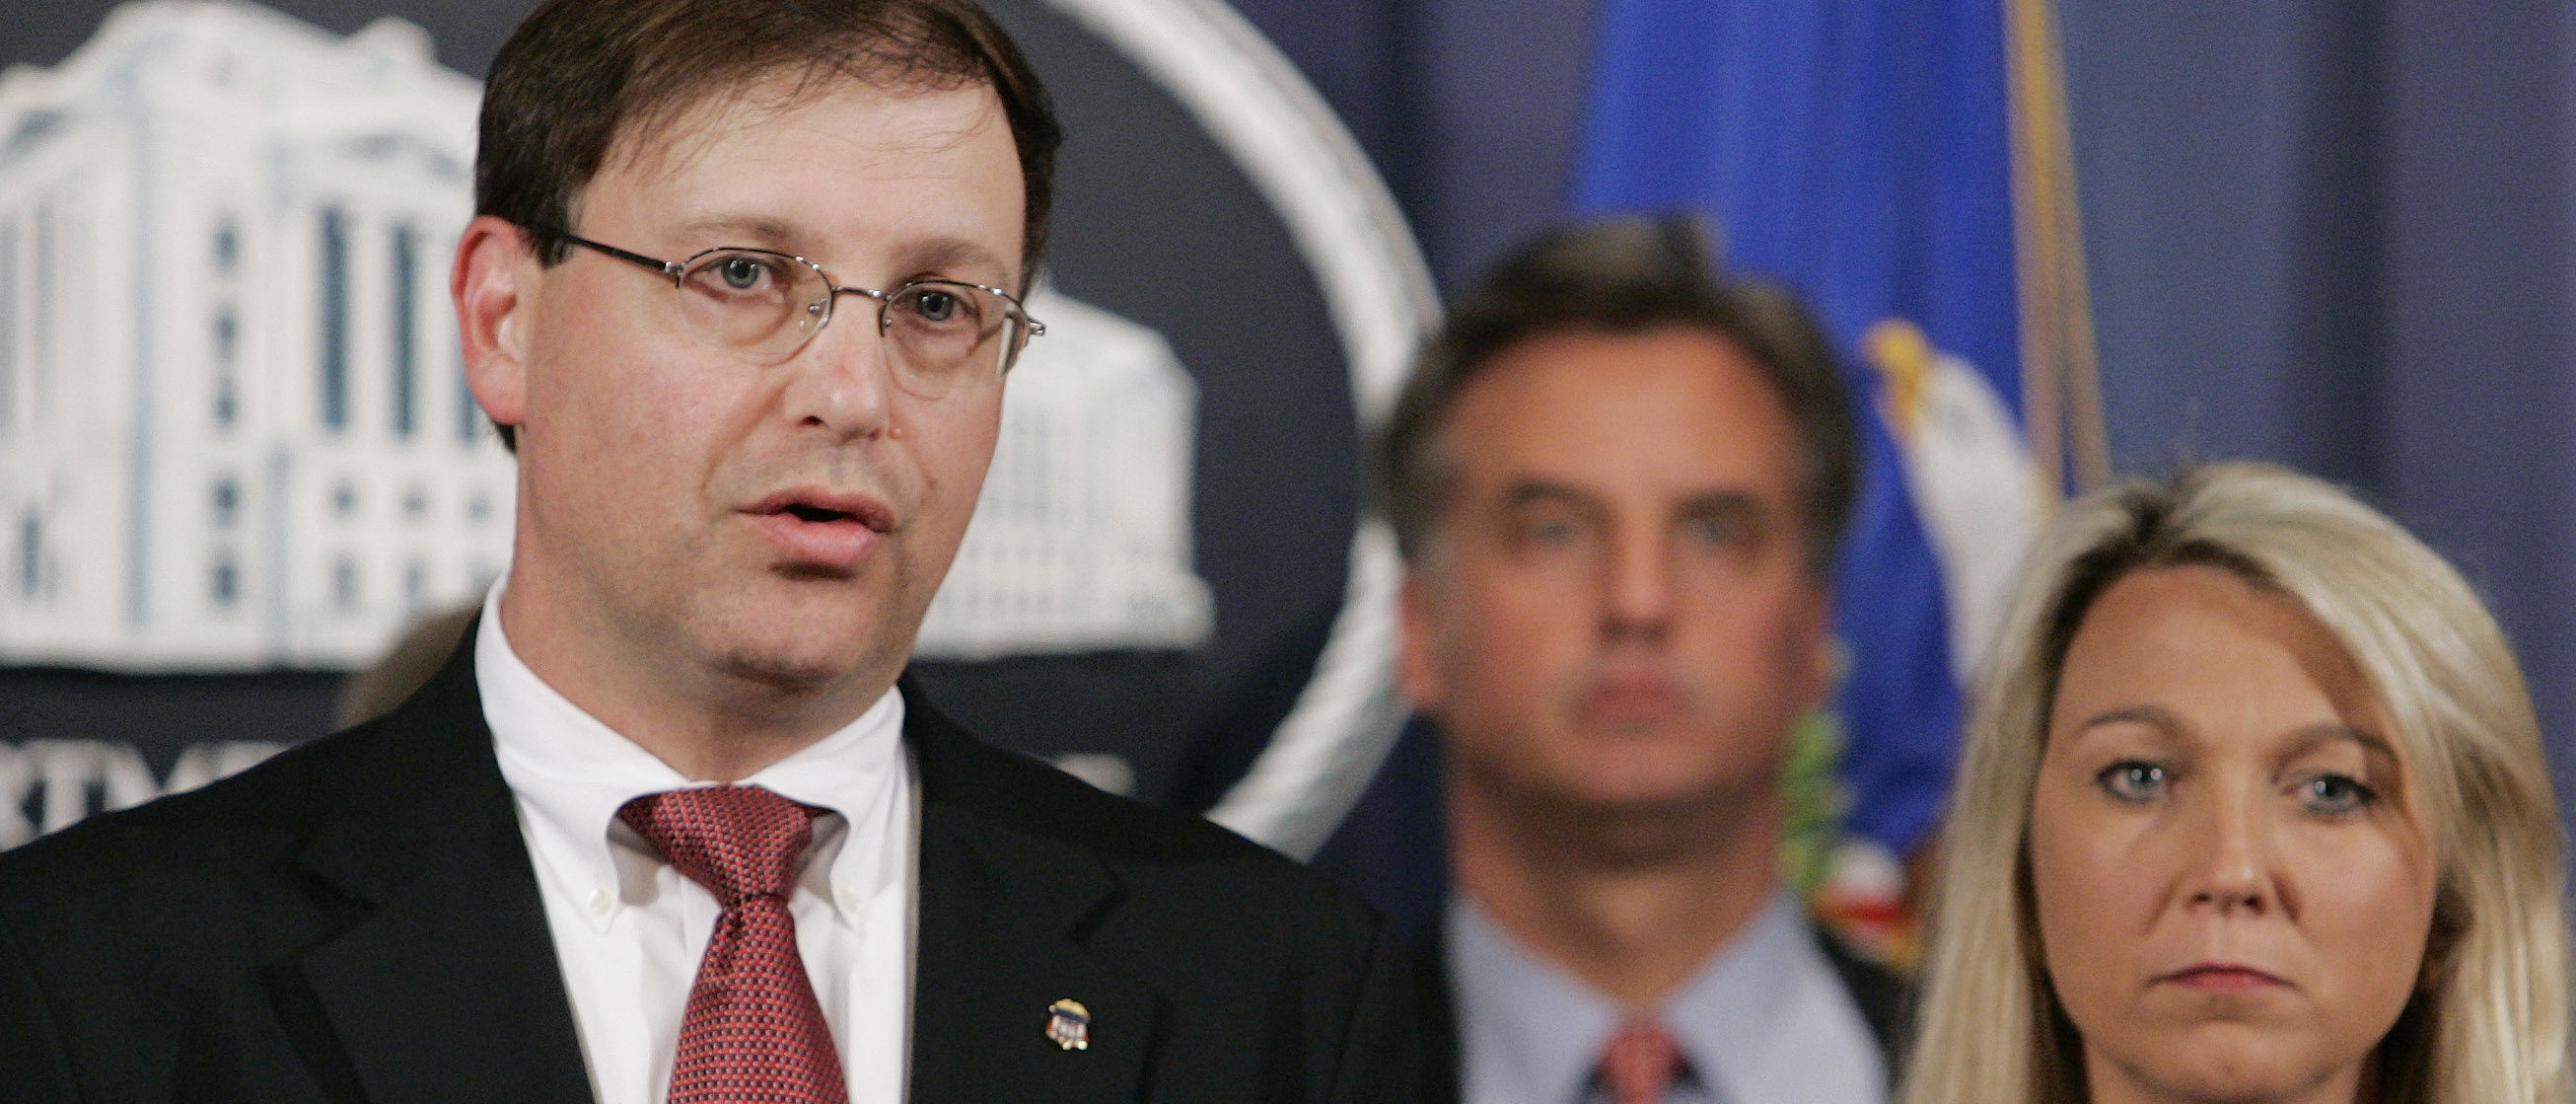 U.S. Attorney Chuck Rosenberg (L) is joined by Assistant Attorney General Alice Fisher (R) as they announce the indictment of Rep. William Jefferson (D-LA) on 16 counts of public corruption, including bribery, in Washington, June 4, 2007. Jefferson was indicted on Monday on 16 criminal counts for conspiring to solicit bribes and pay off a Nigerian official, with $90,000 of an intended bribe found hidden in his home freezer wrapped in aluminum foil. REUTERS/Larry Downing (UNITED STATES) - GM1DVKJIFZAA